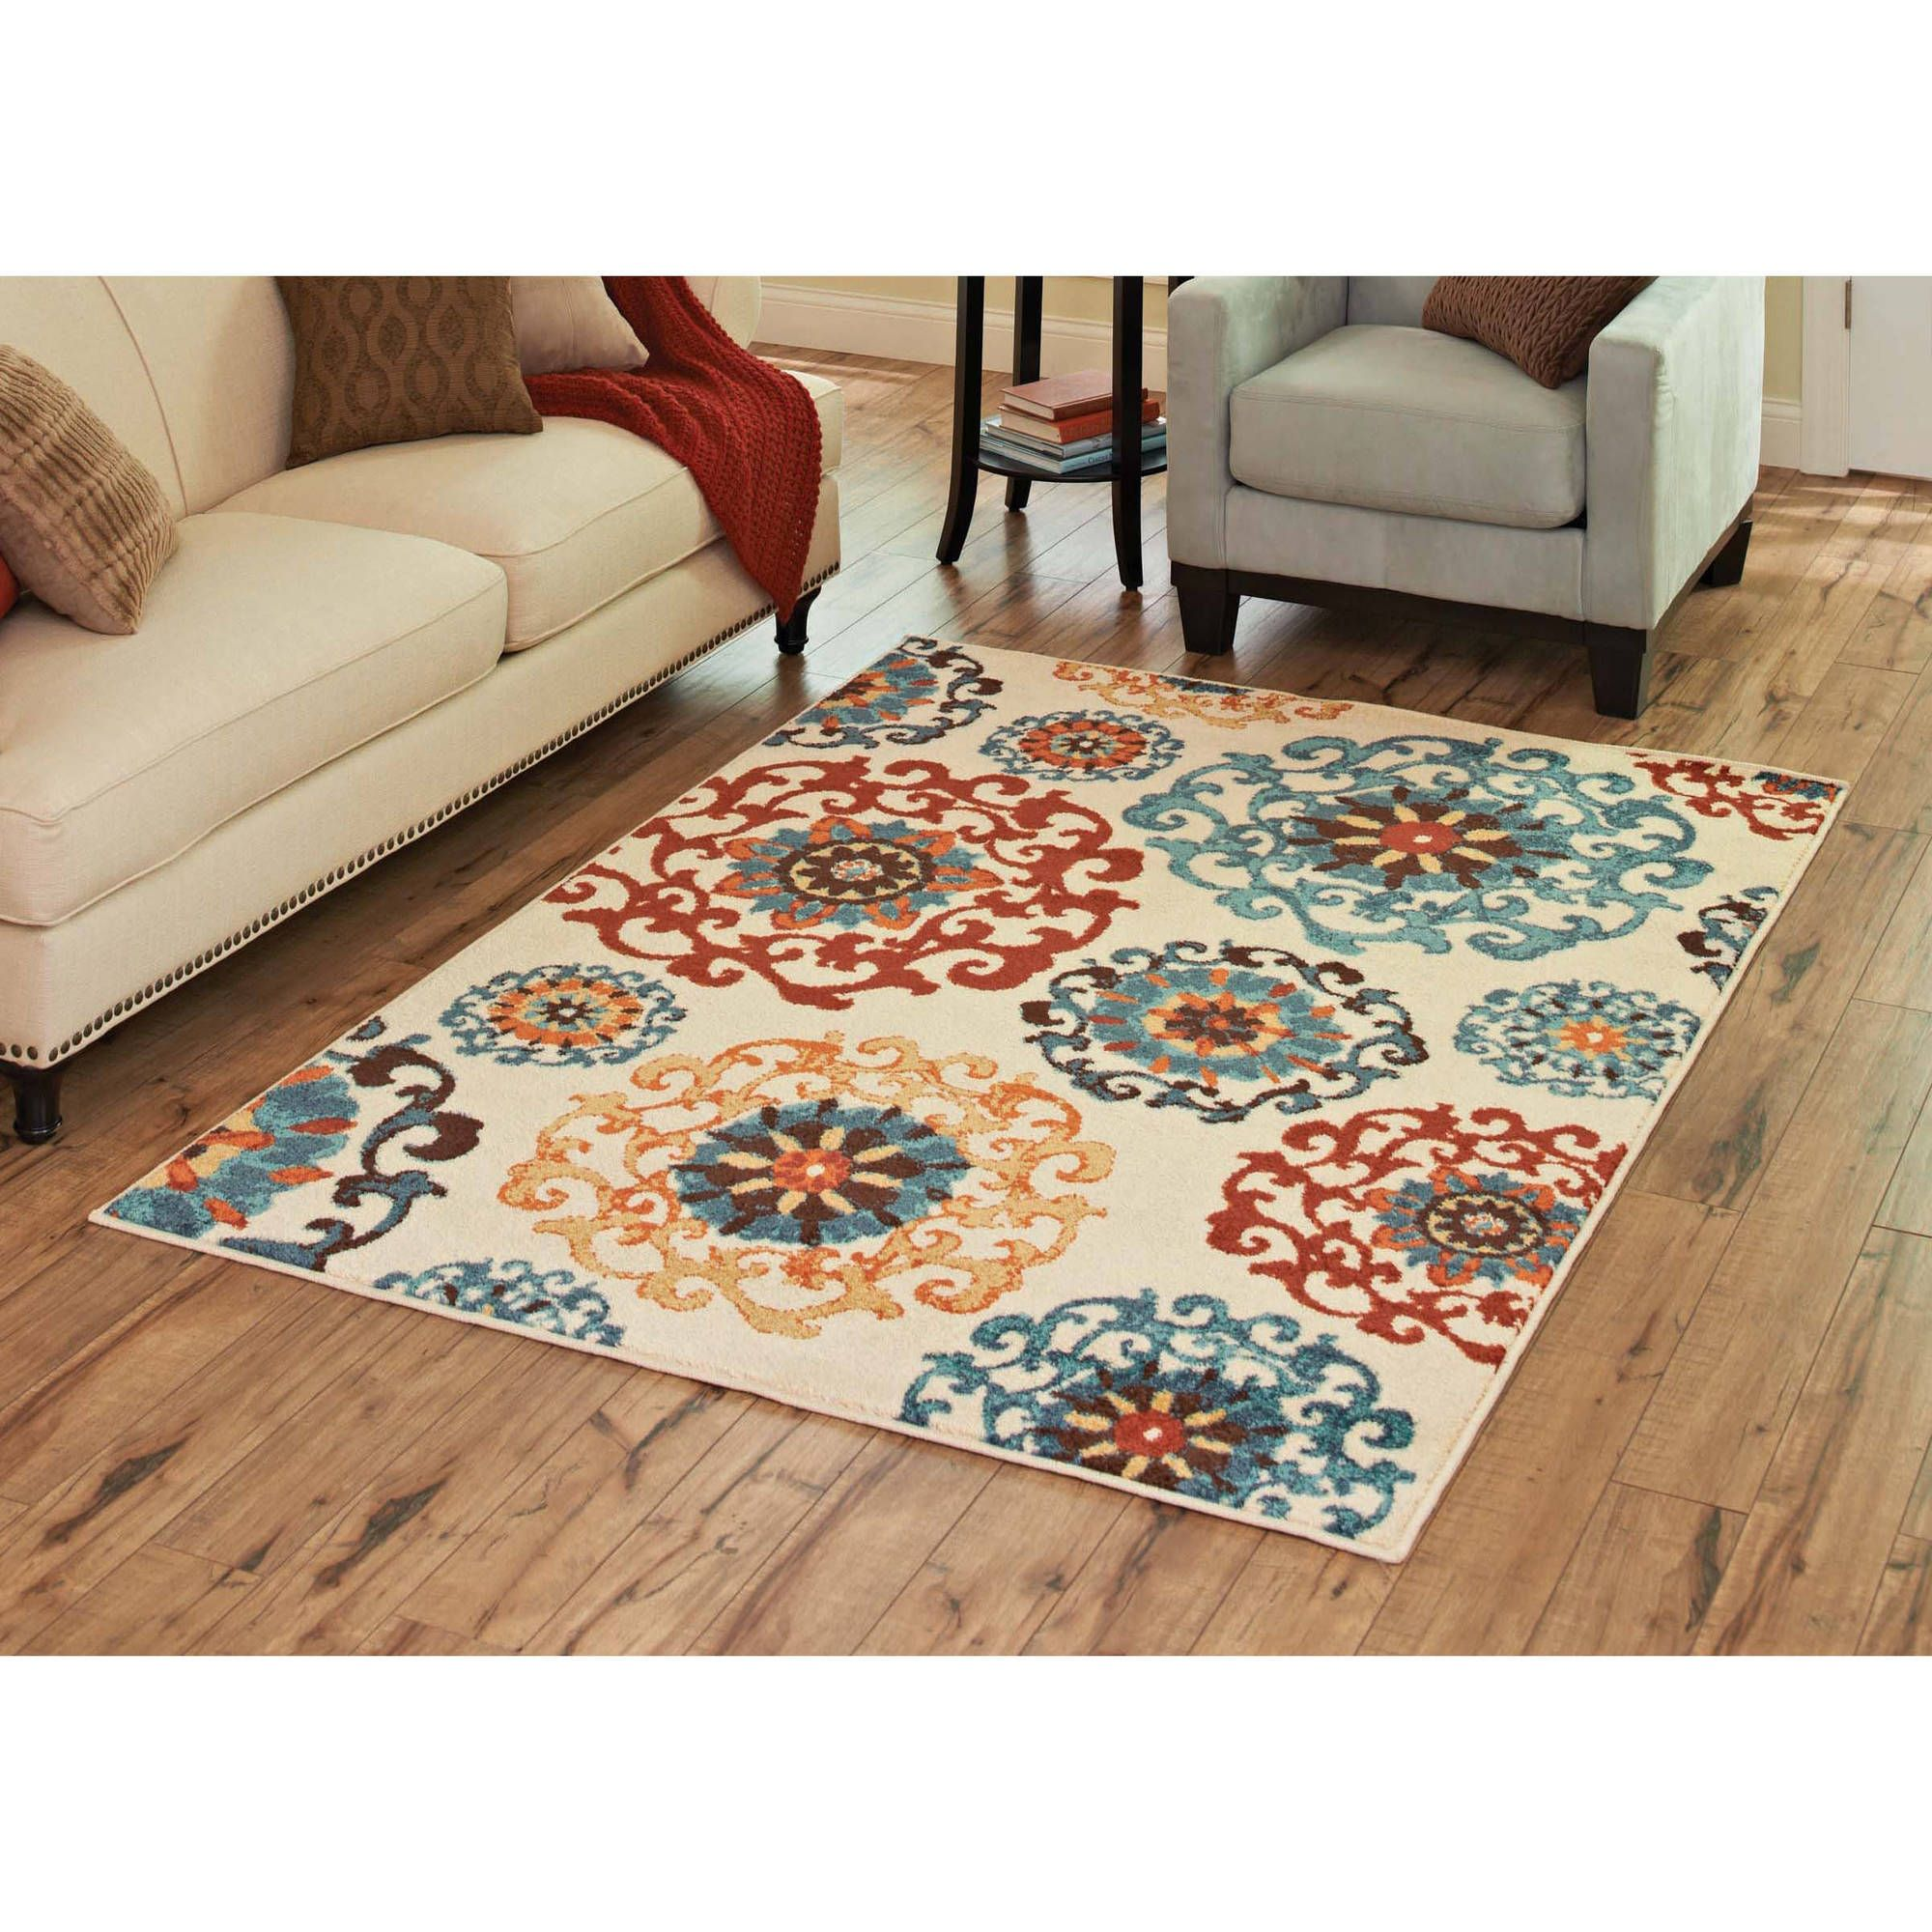 Better Homes And Gardens Suzani Cream Area Rug In Multiple Sizes Alluring Kitchen Mats Target Inspiration Design